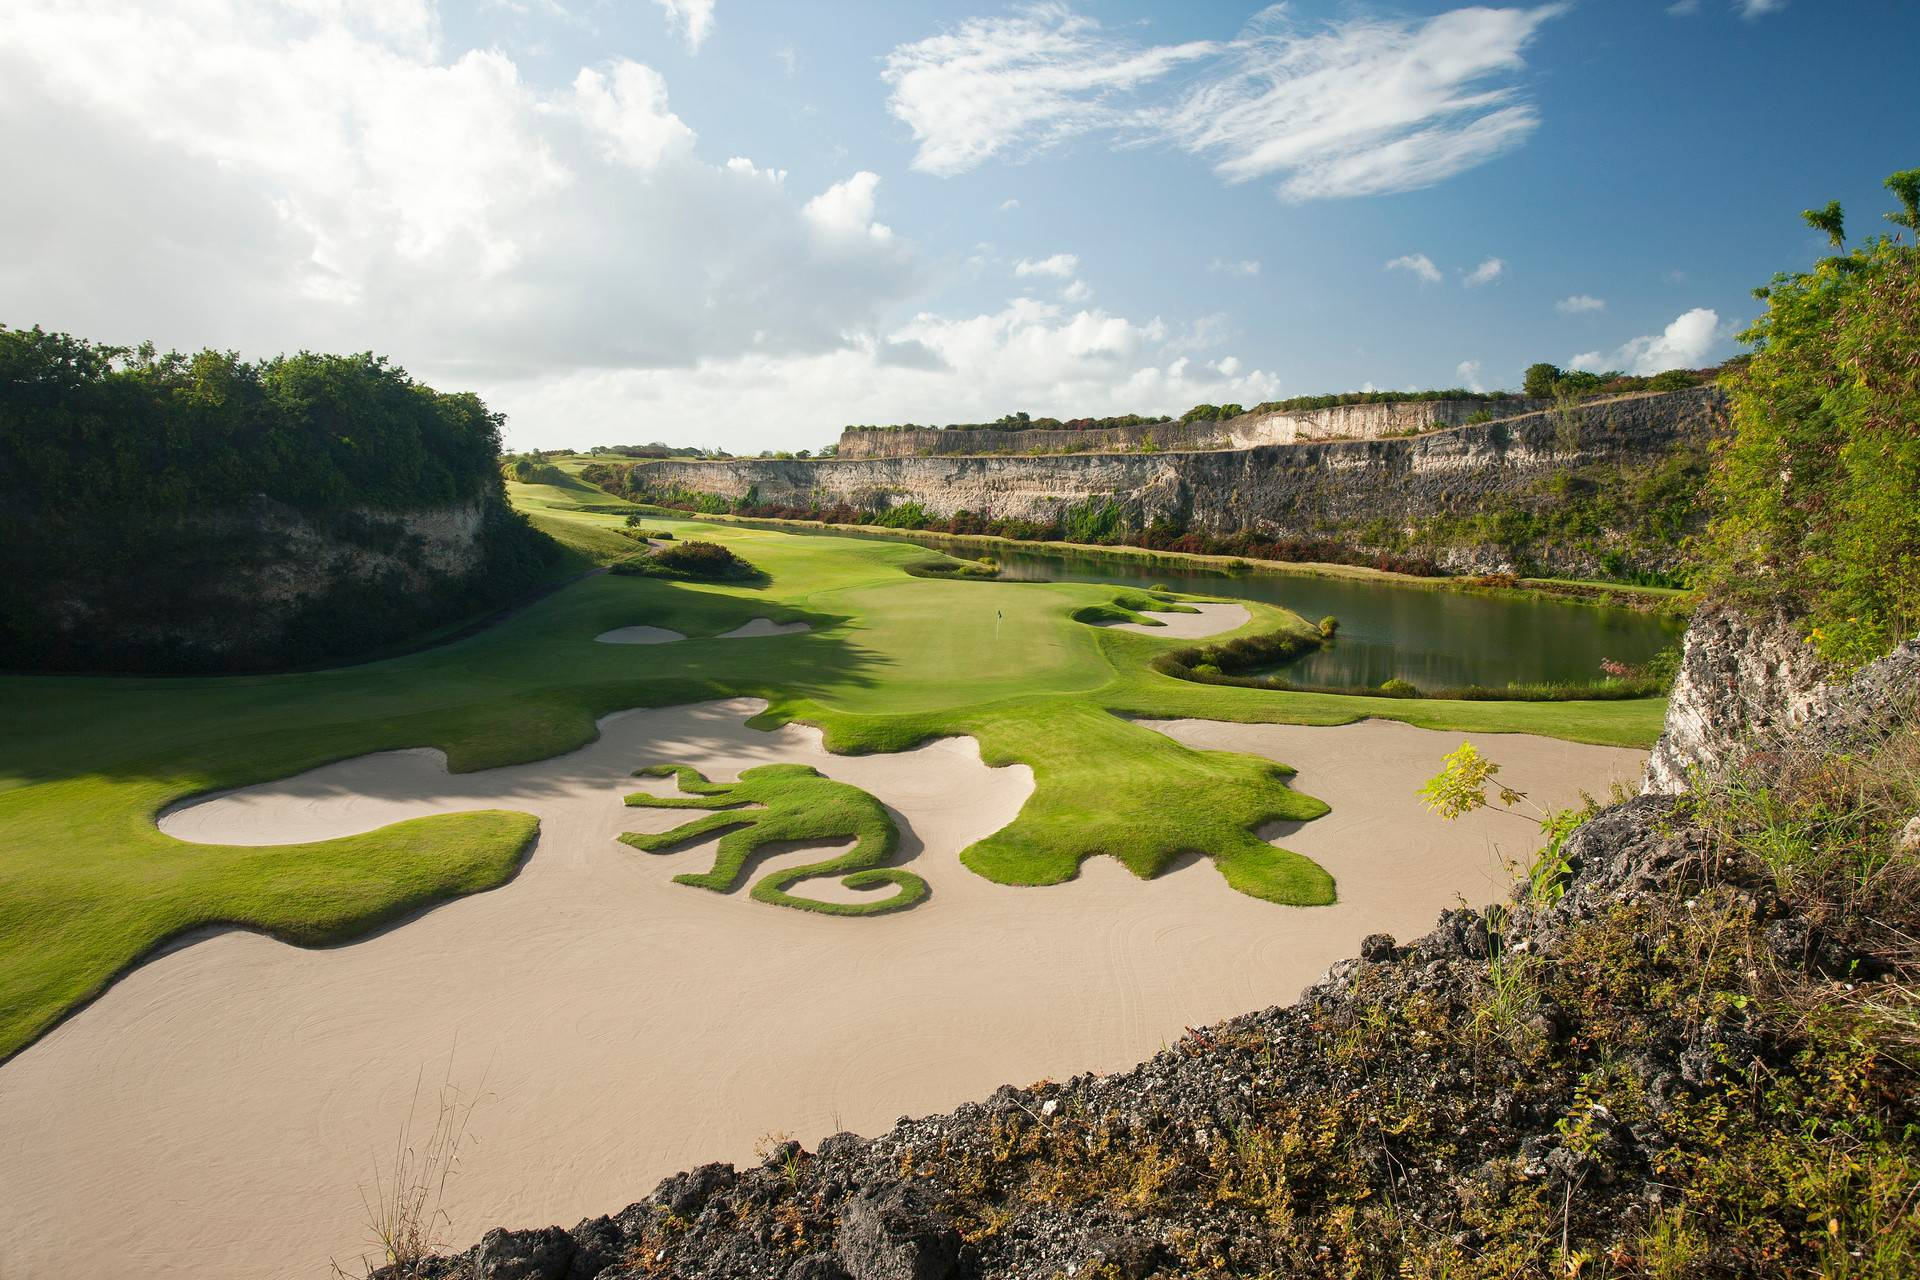 The 16th hole on the Green Monkey